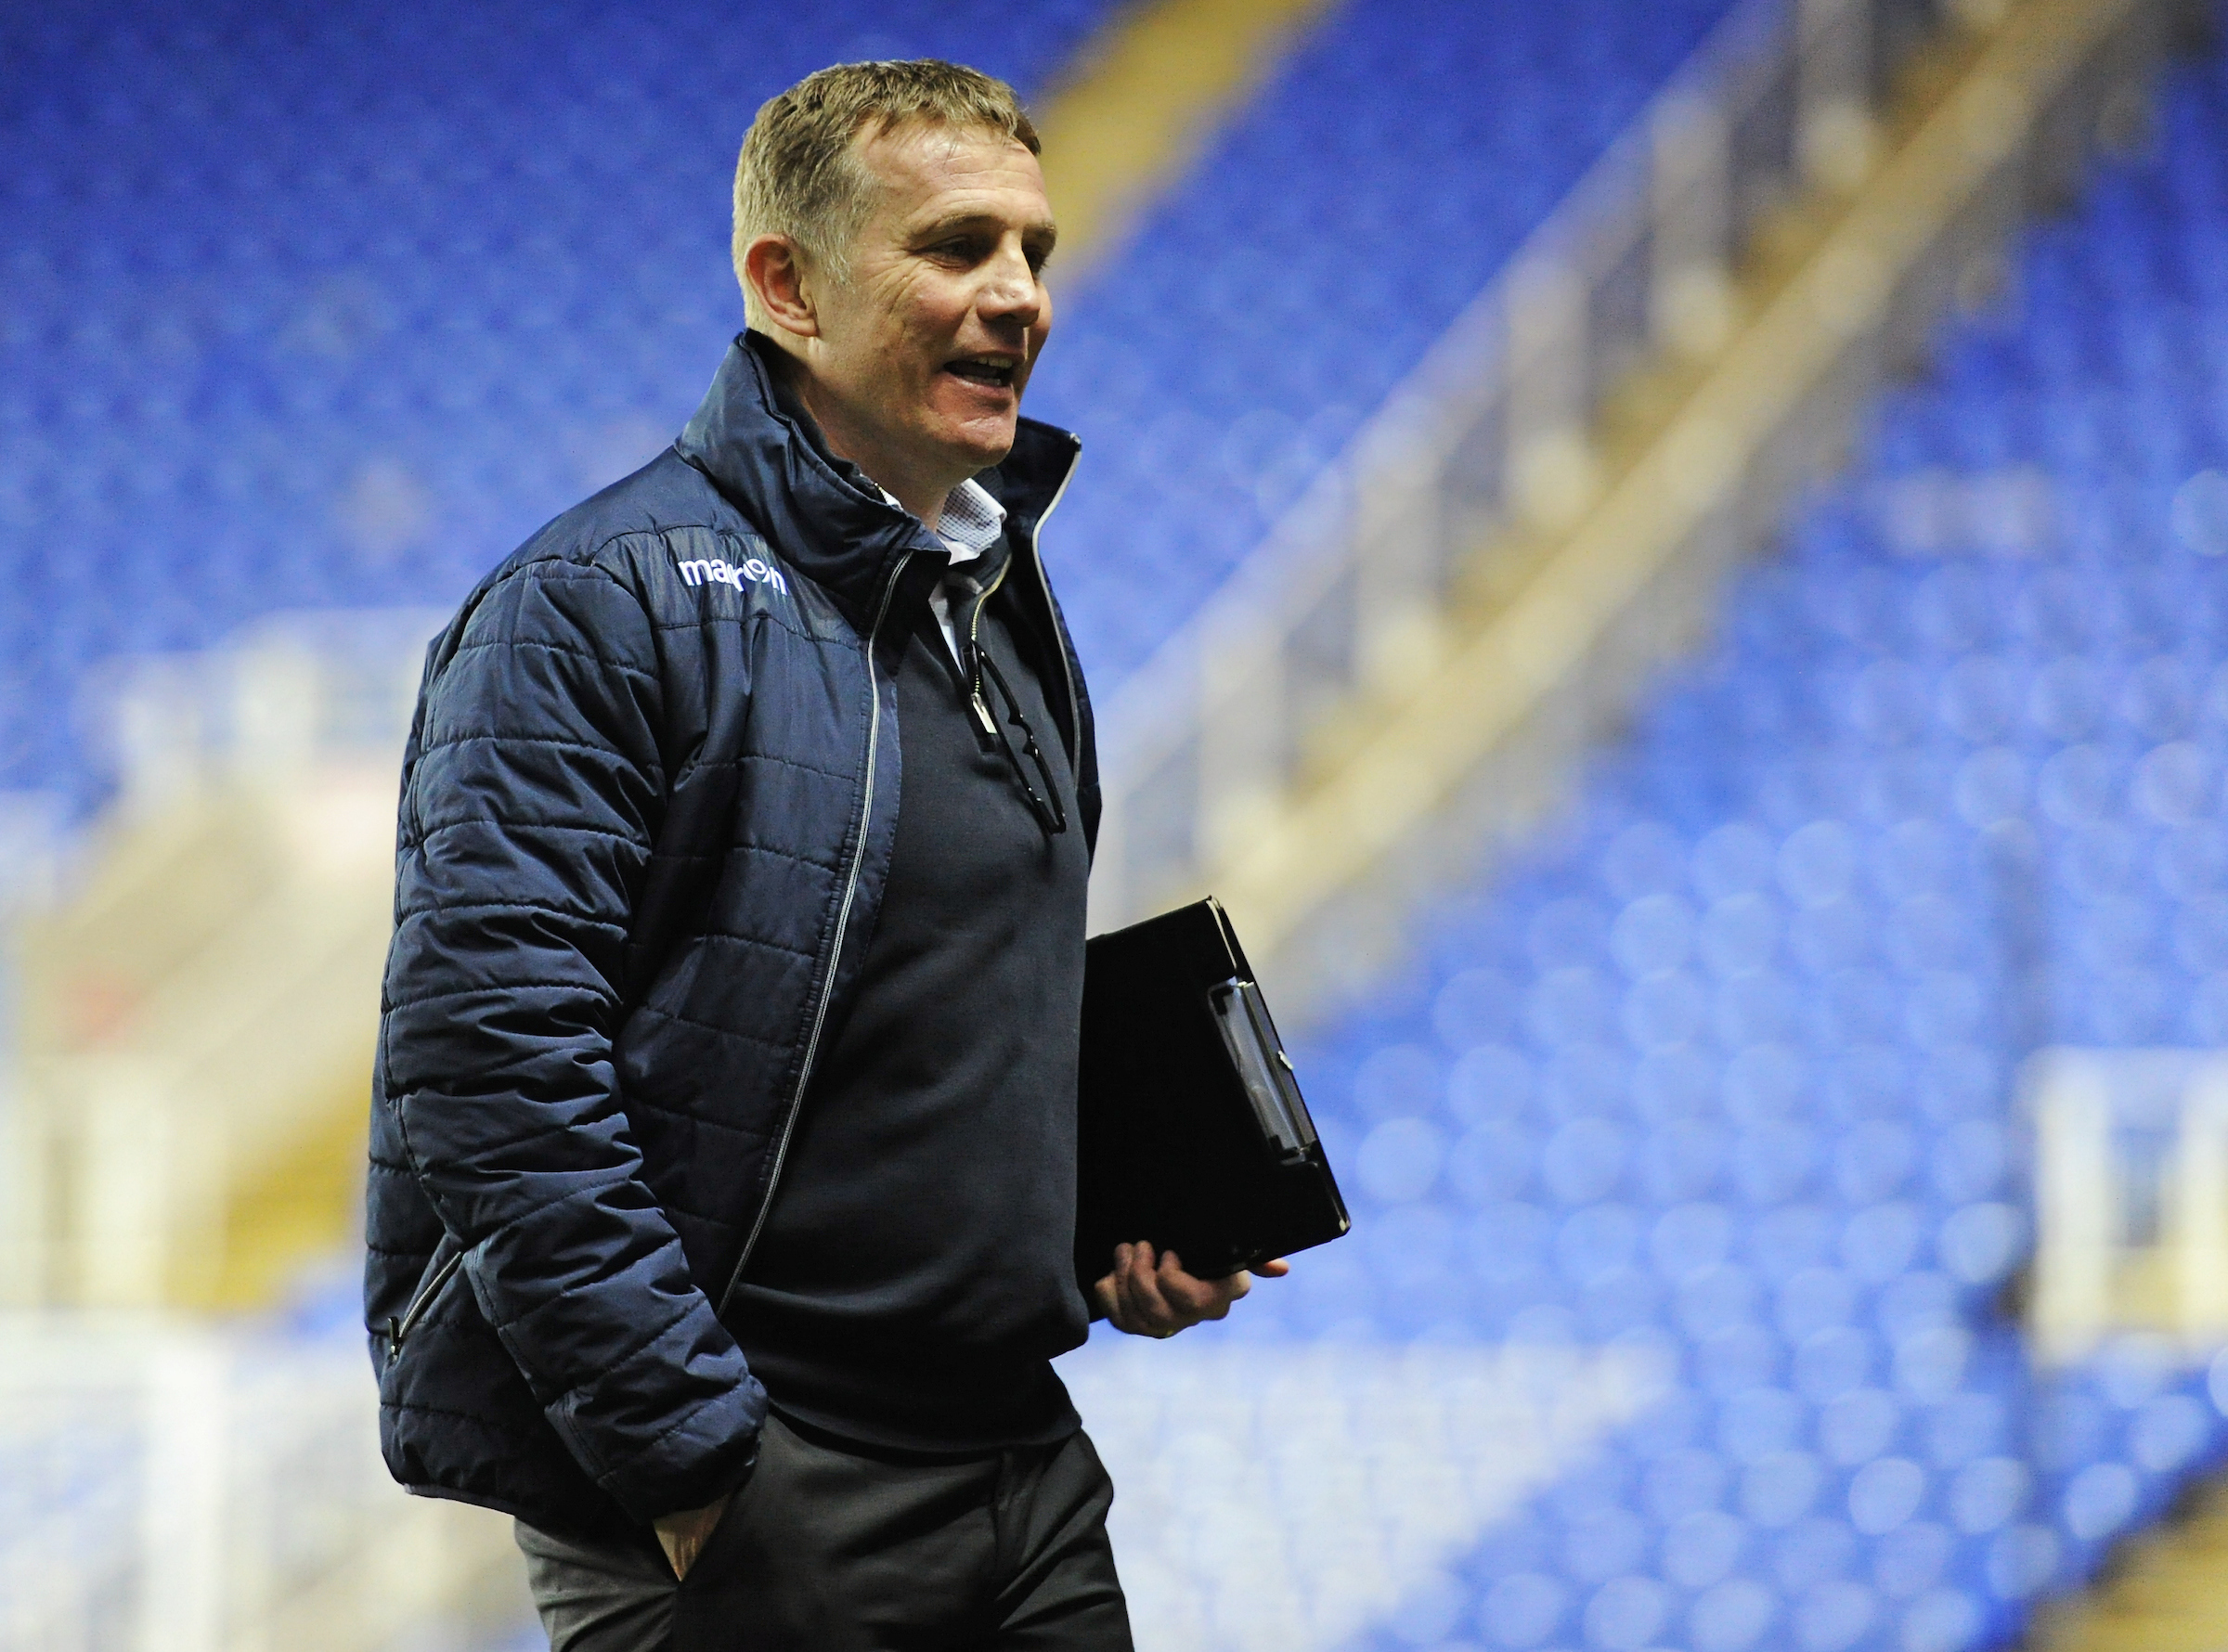 PLAN OF ATTACK: Phil Parkinson walks off at Reading's Madejski Stadium clutching his clipboard after a change of tactical plan on Tuesday night